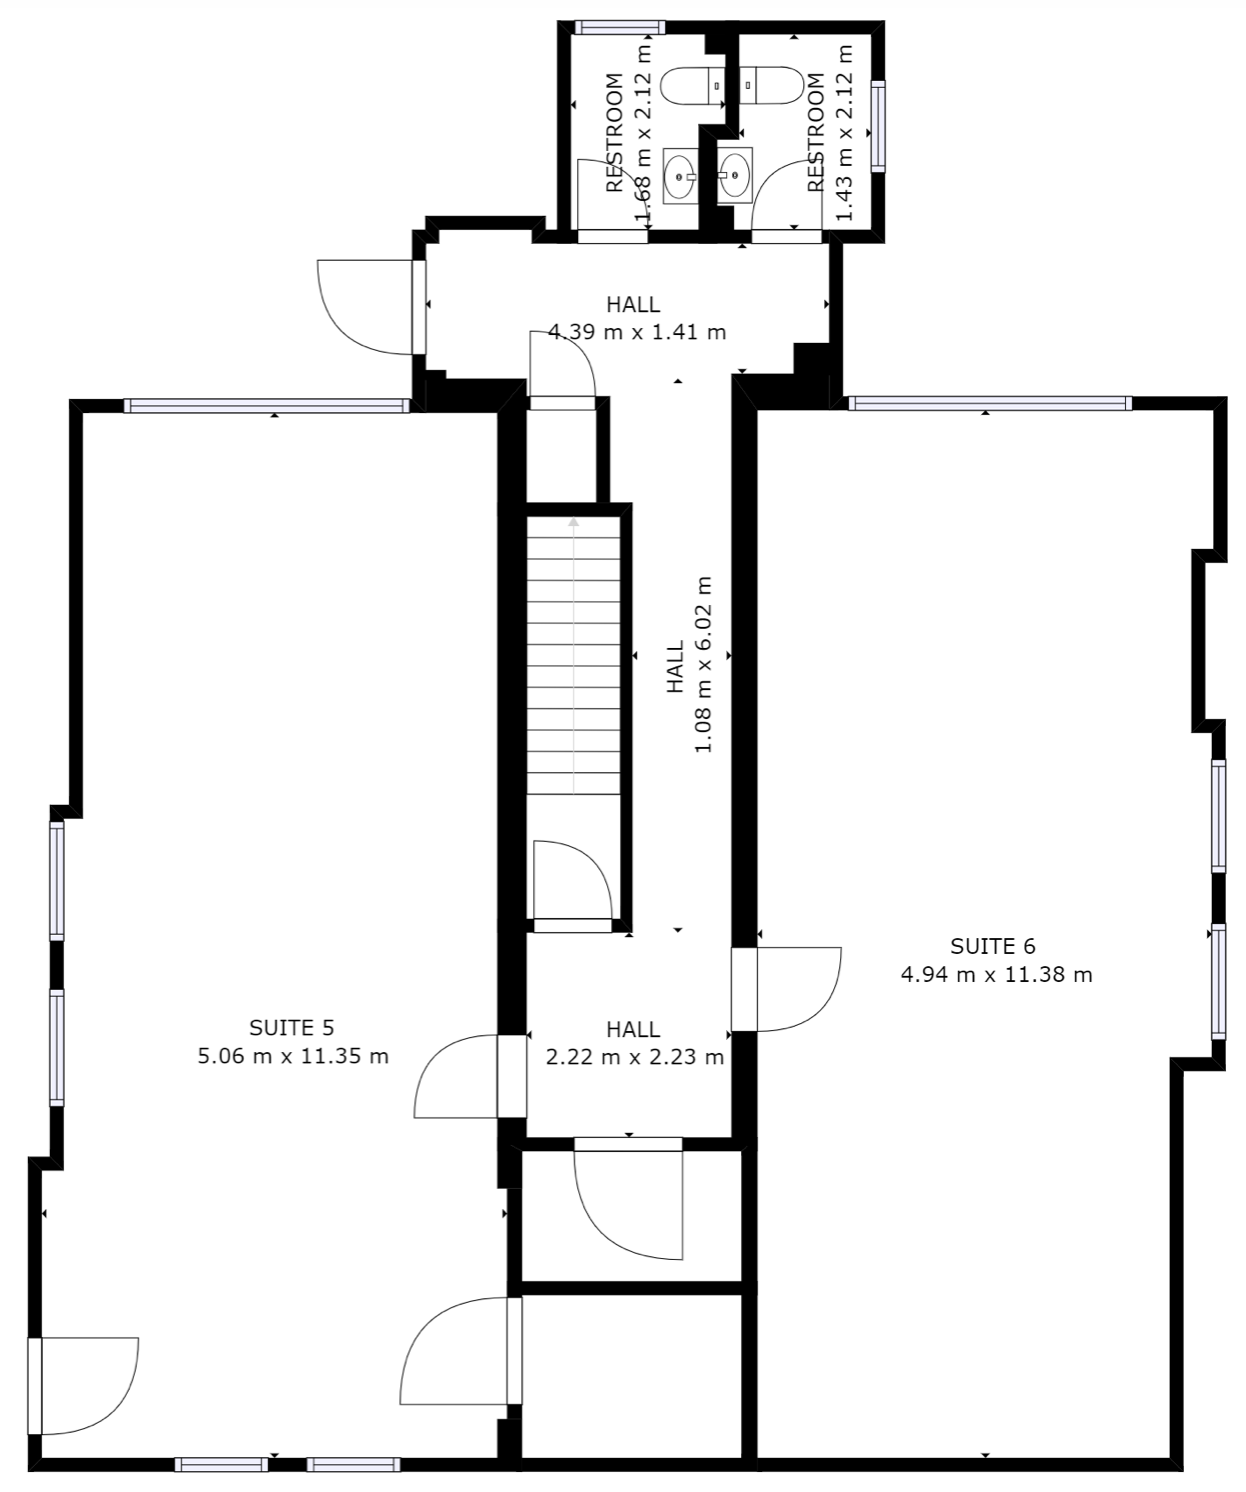 Lower ground/basement floor plan of Markham House and offices to rent in Wokingham